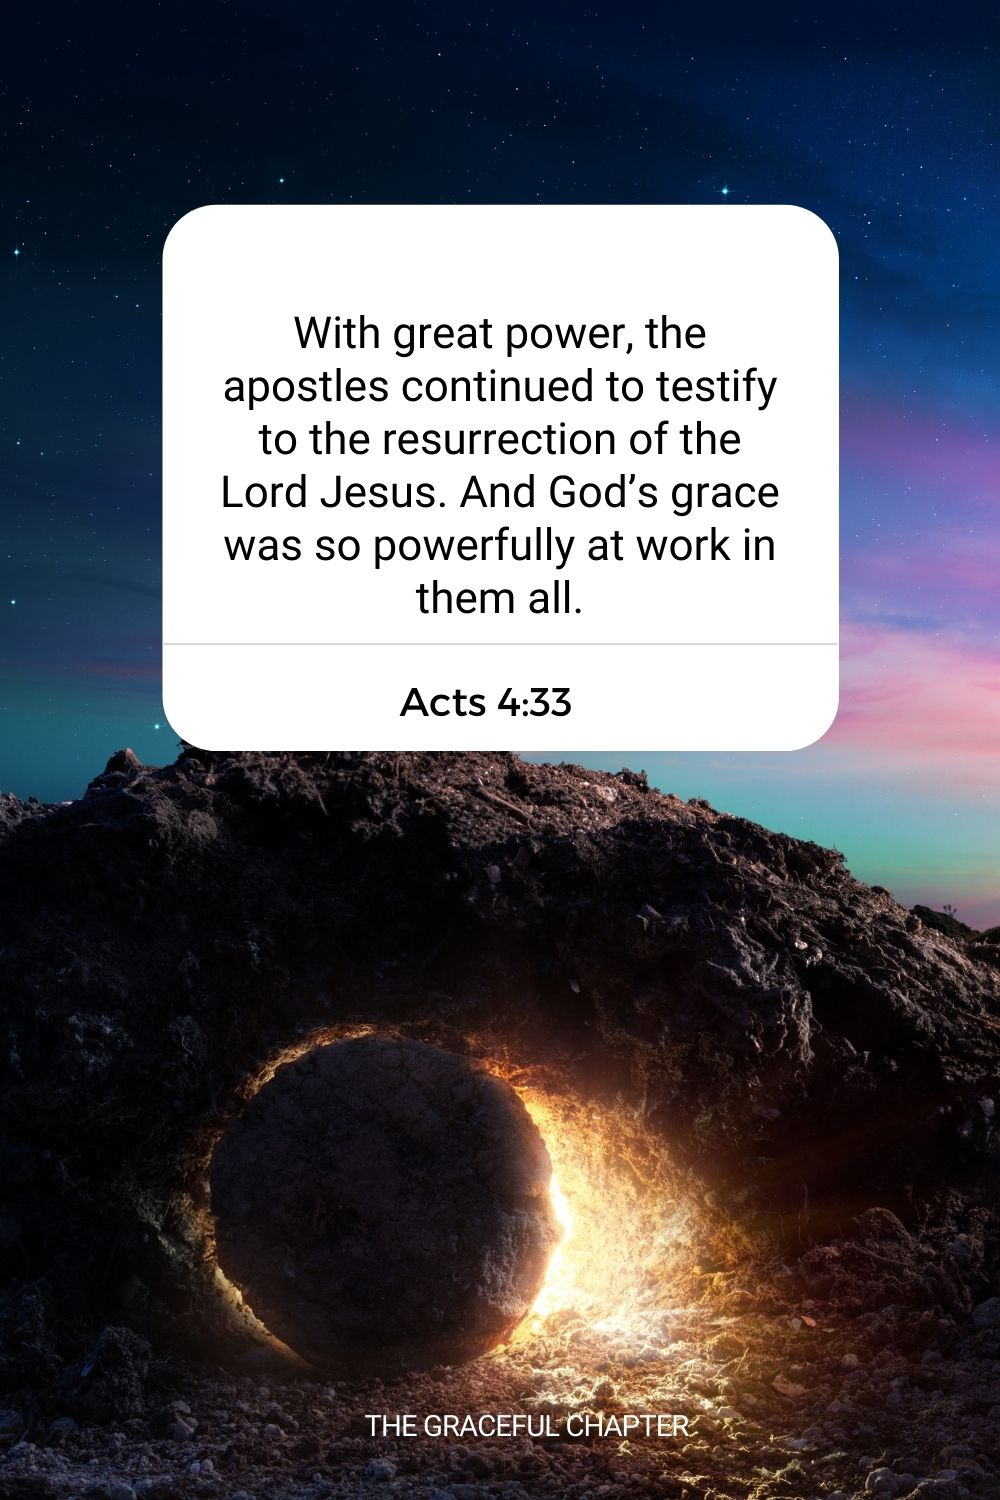 With great power, the apostles continued to testify to the resurrection of the Lord Jesus. And God's grace was so powerfully at work in them all. Acts 4:33